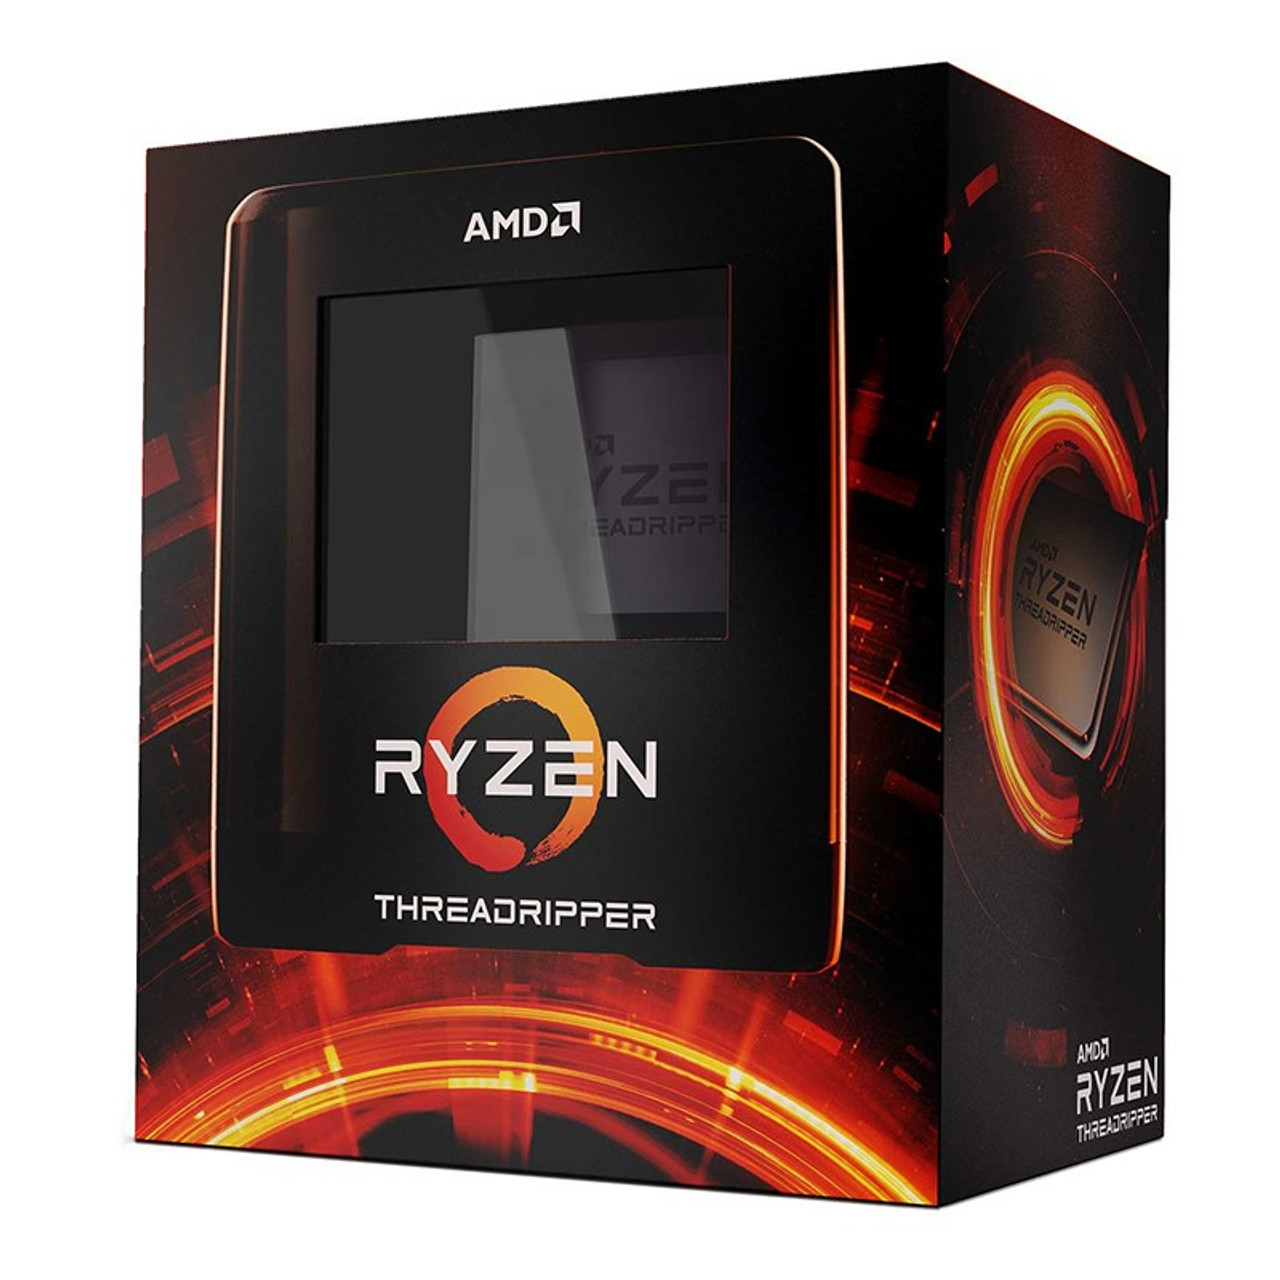 Image for AMD Ryzen Threadripper 3960X 24-Core sTRX4 3.80 GHz Unlocked CPU Processor CX Computer Superstore